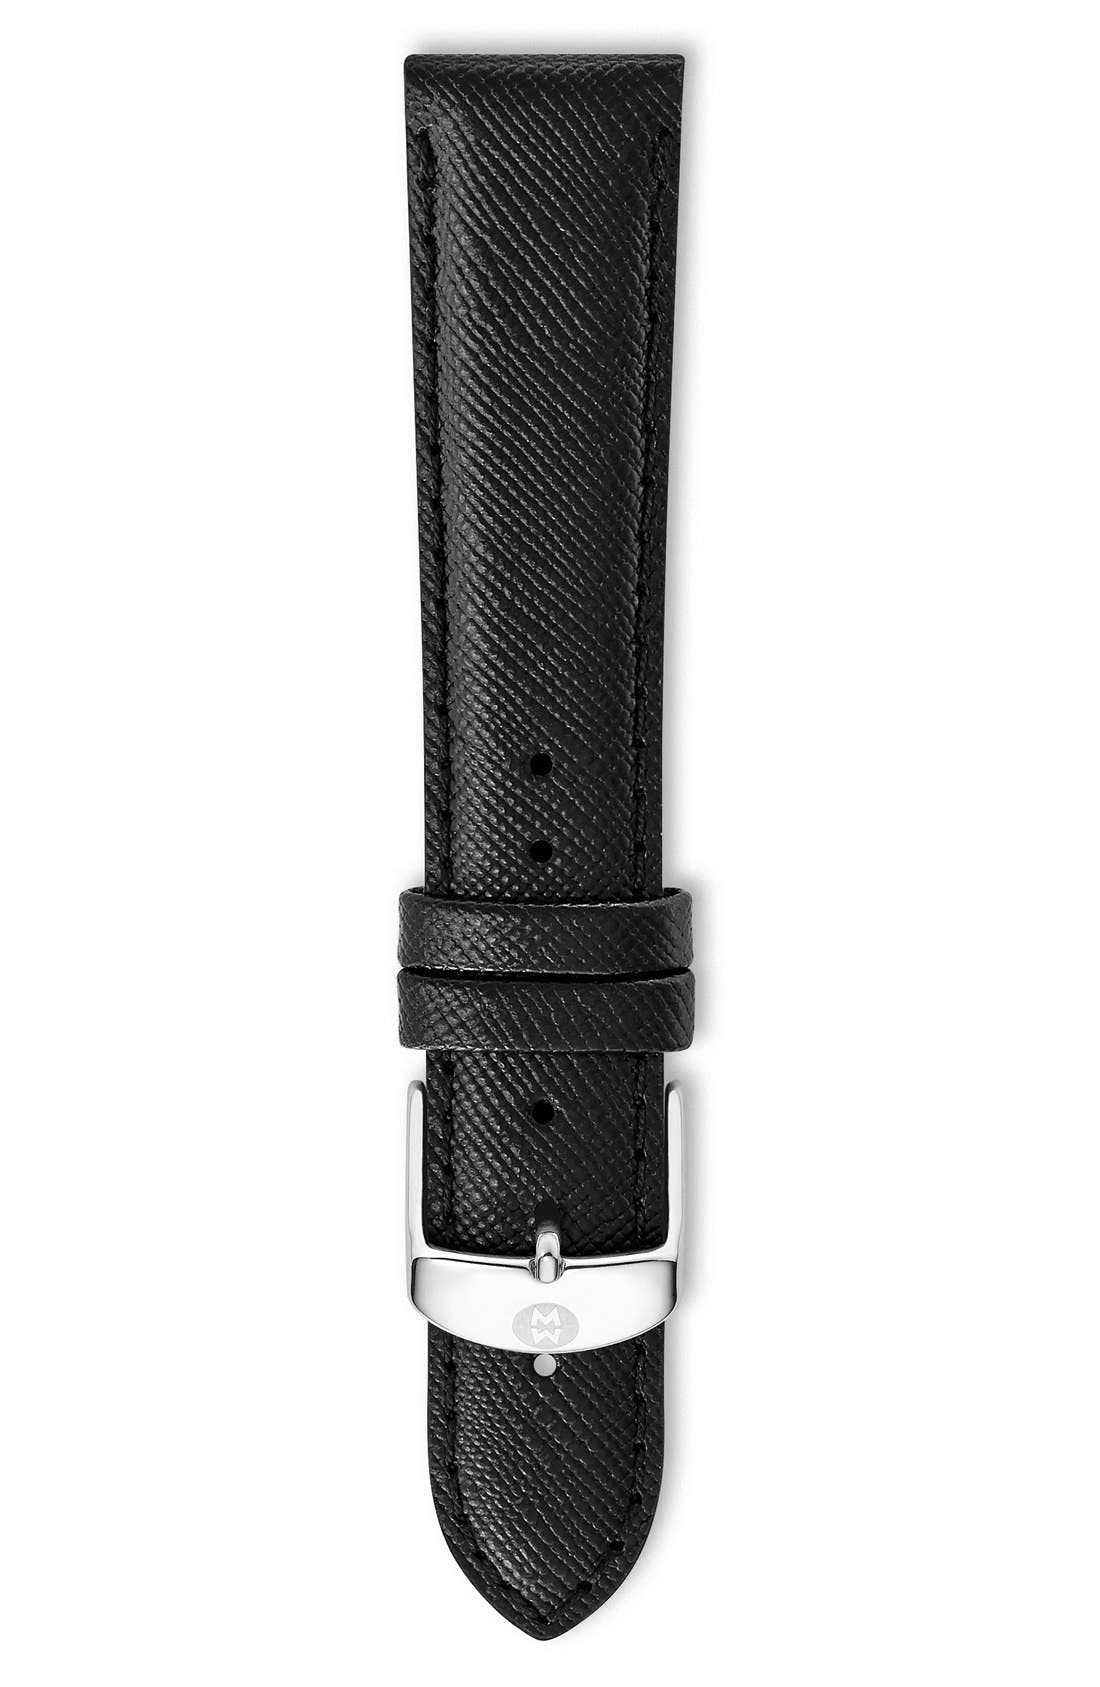 16mm Saffiano Leather Watch Strap,                             Main thumbnail 1, color,                             Jet Black